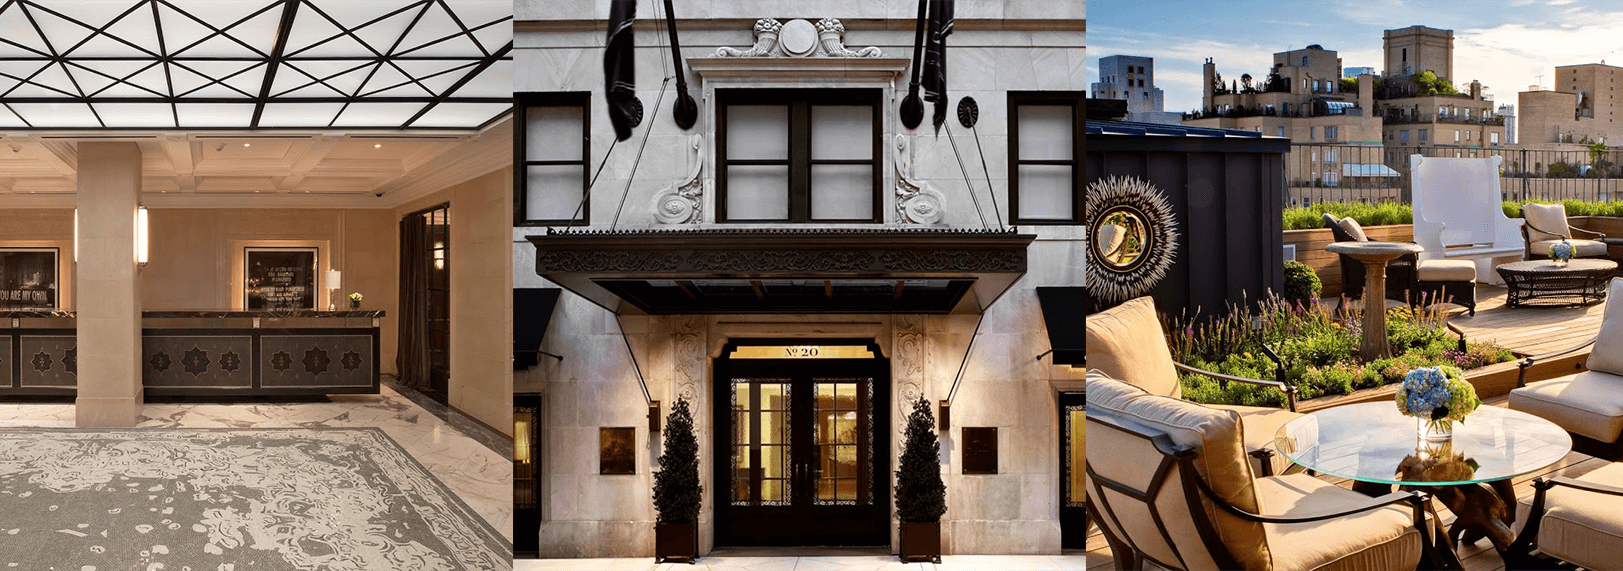 The Surrey Hotel New York City